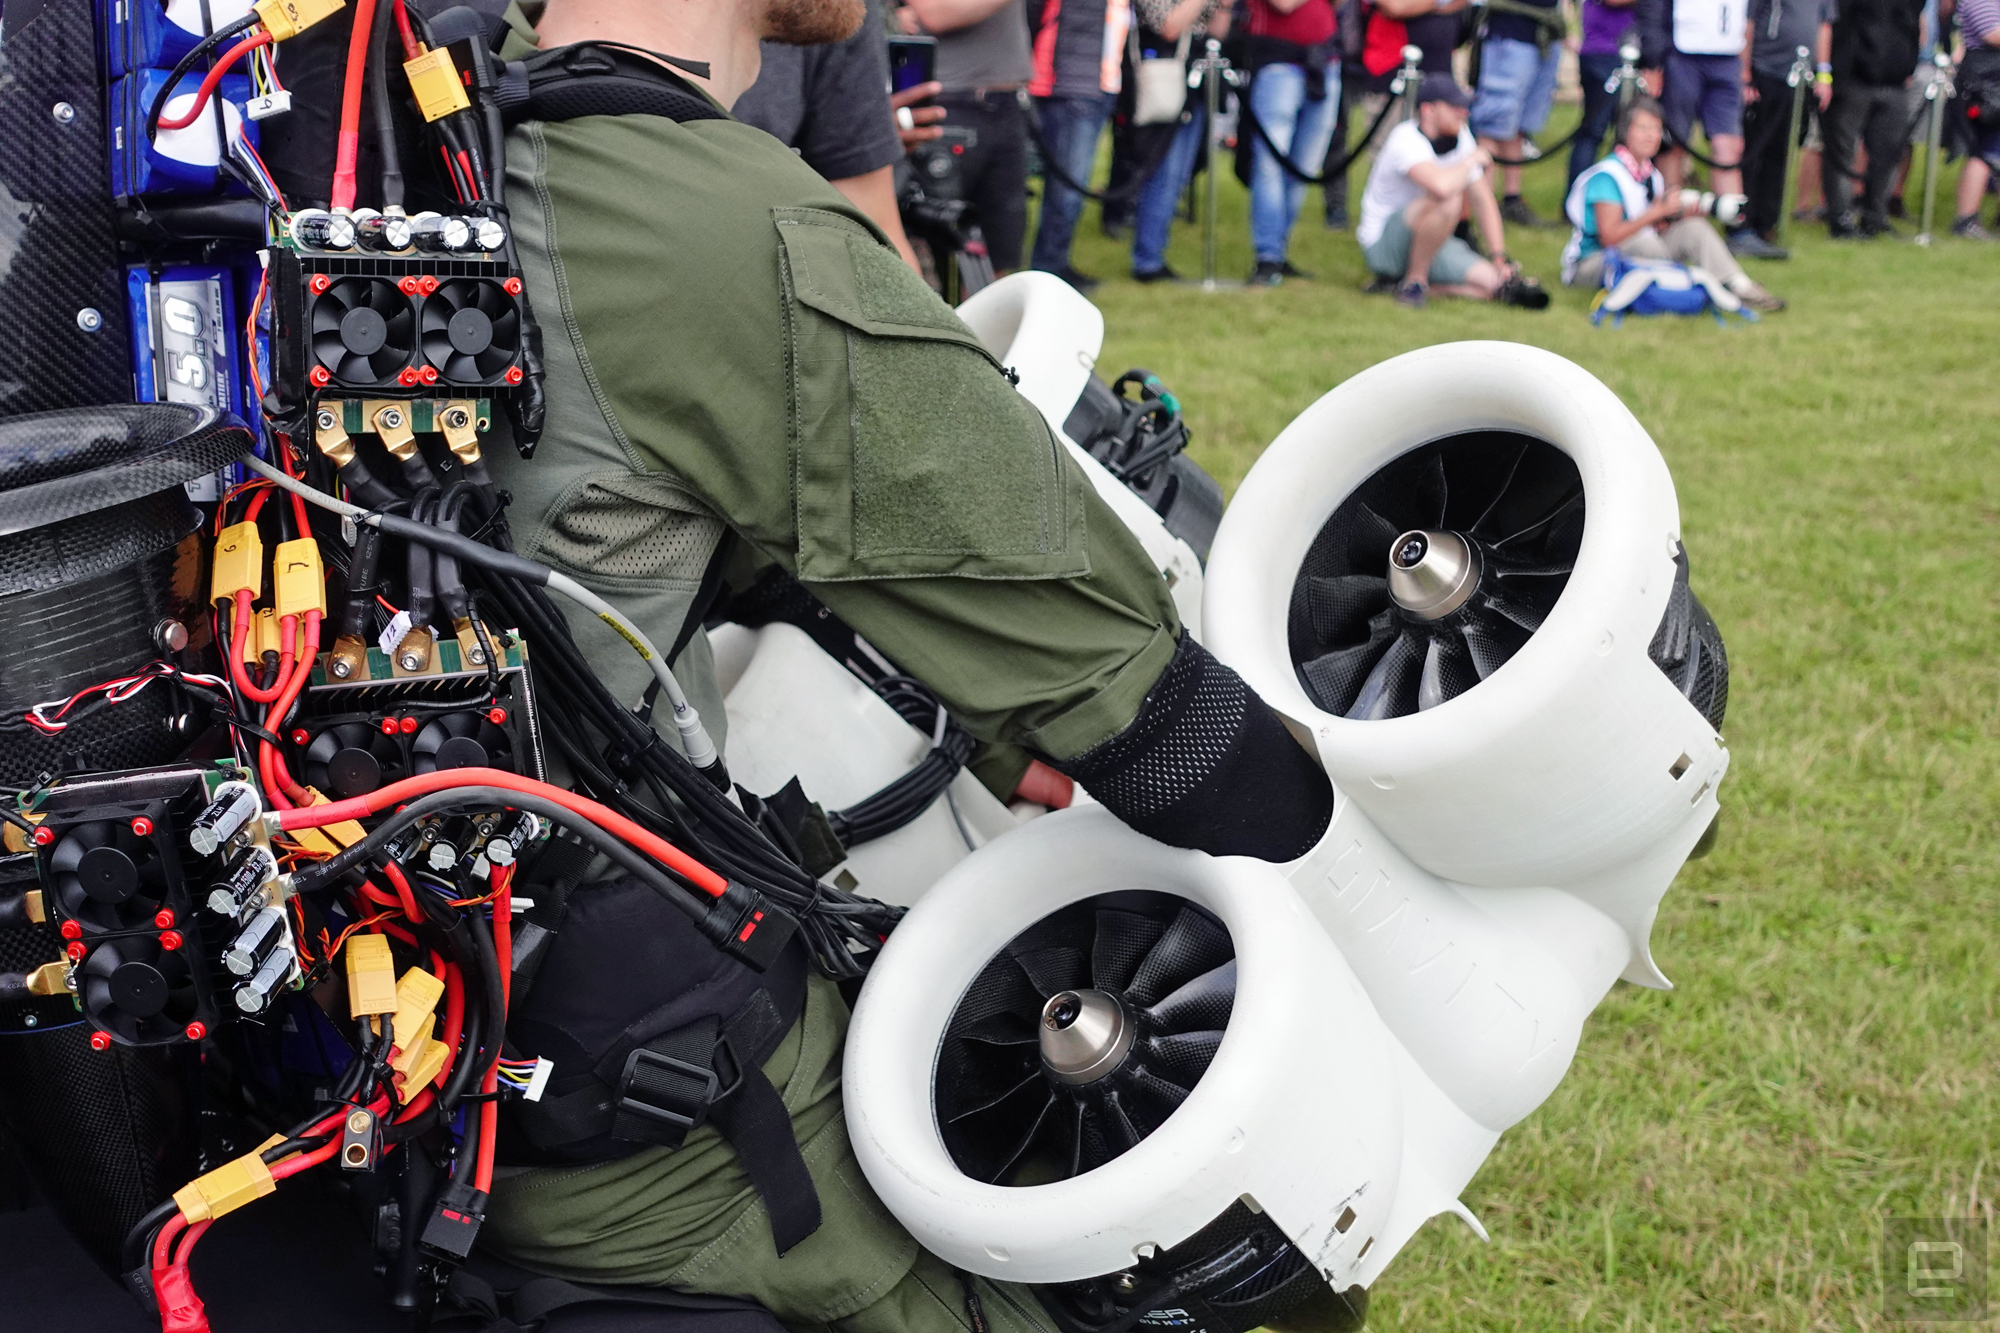 What is driving Gravity Industries 'jet suit